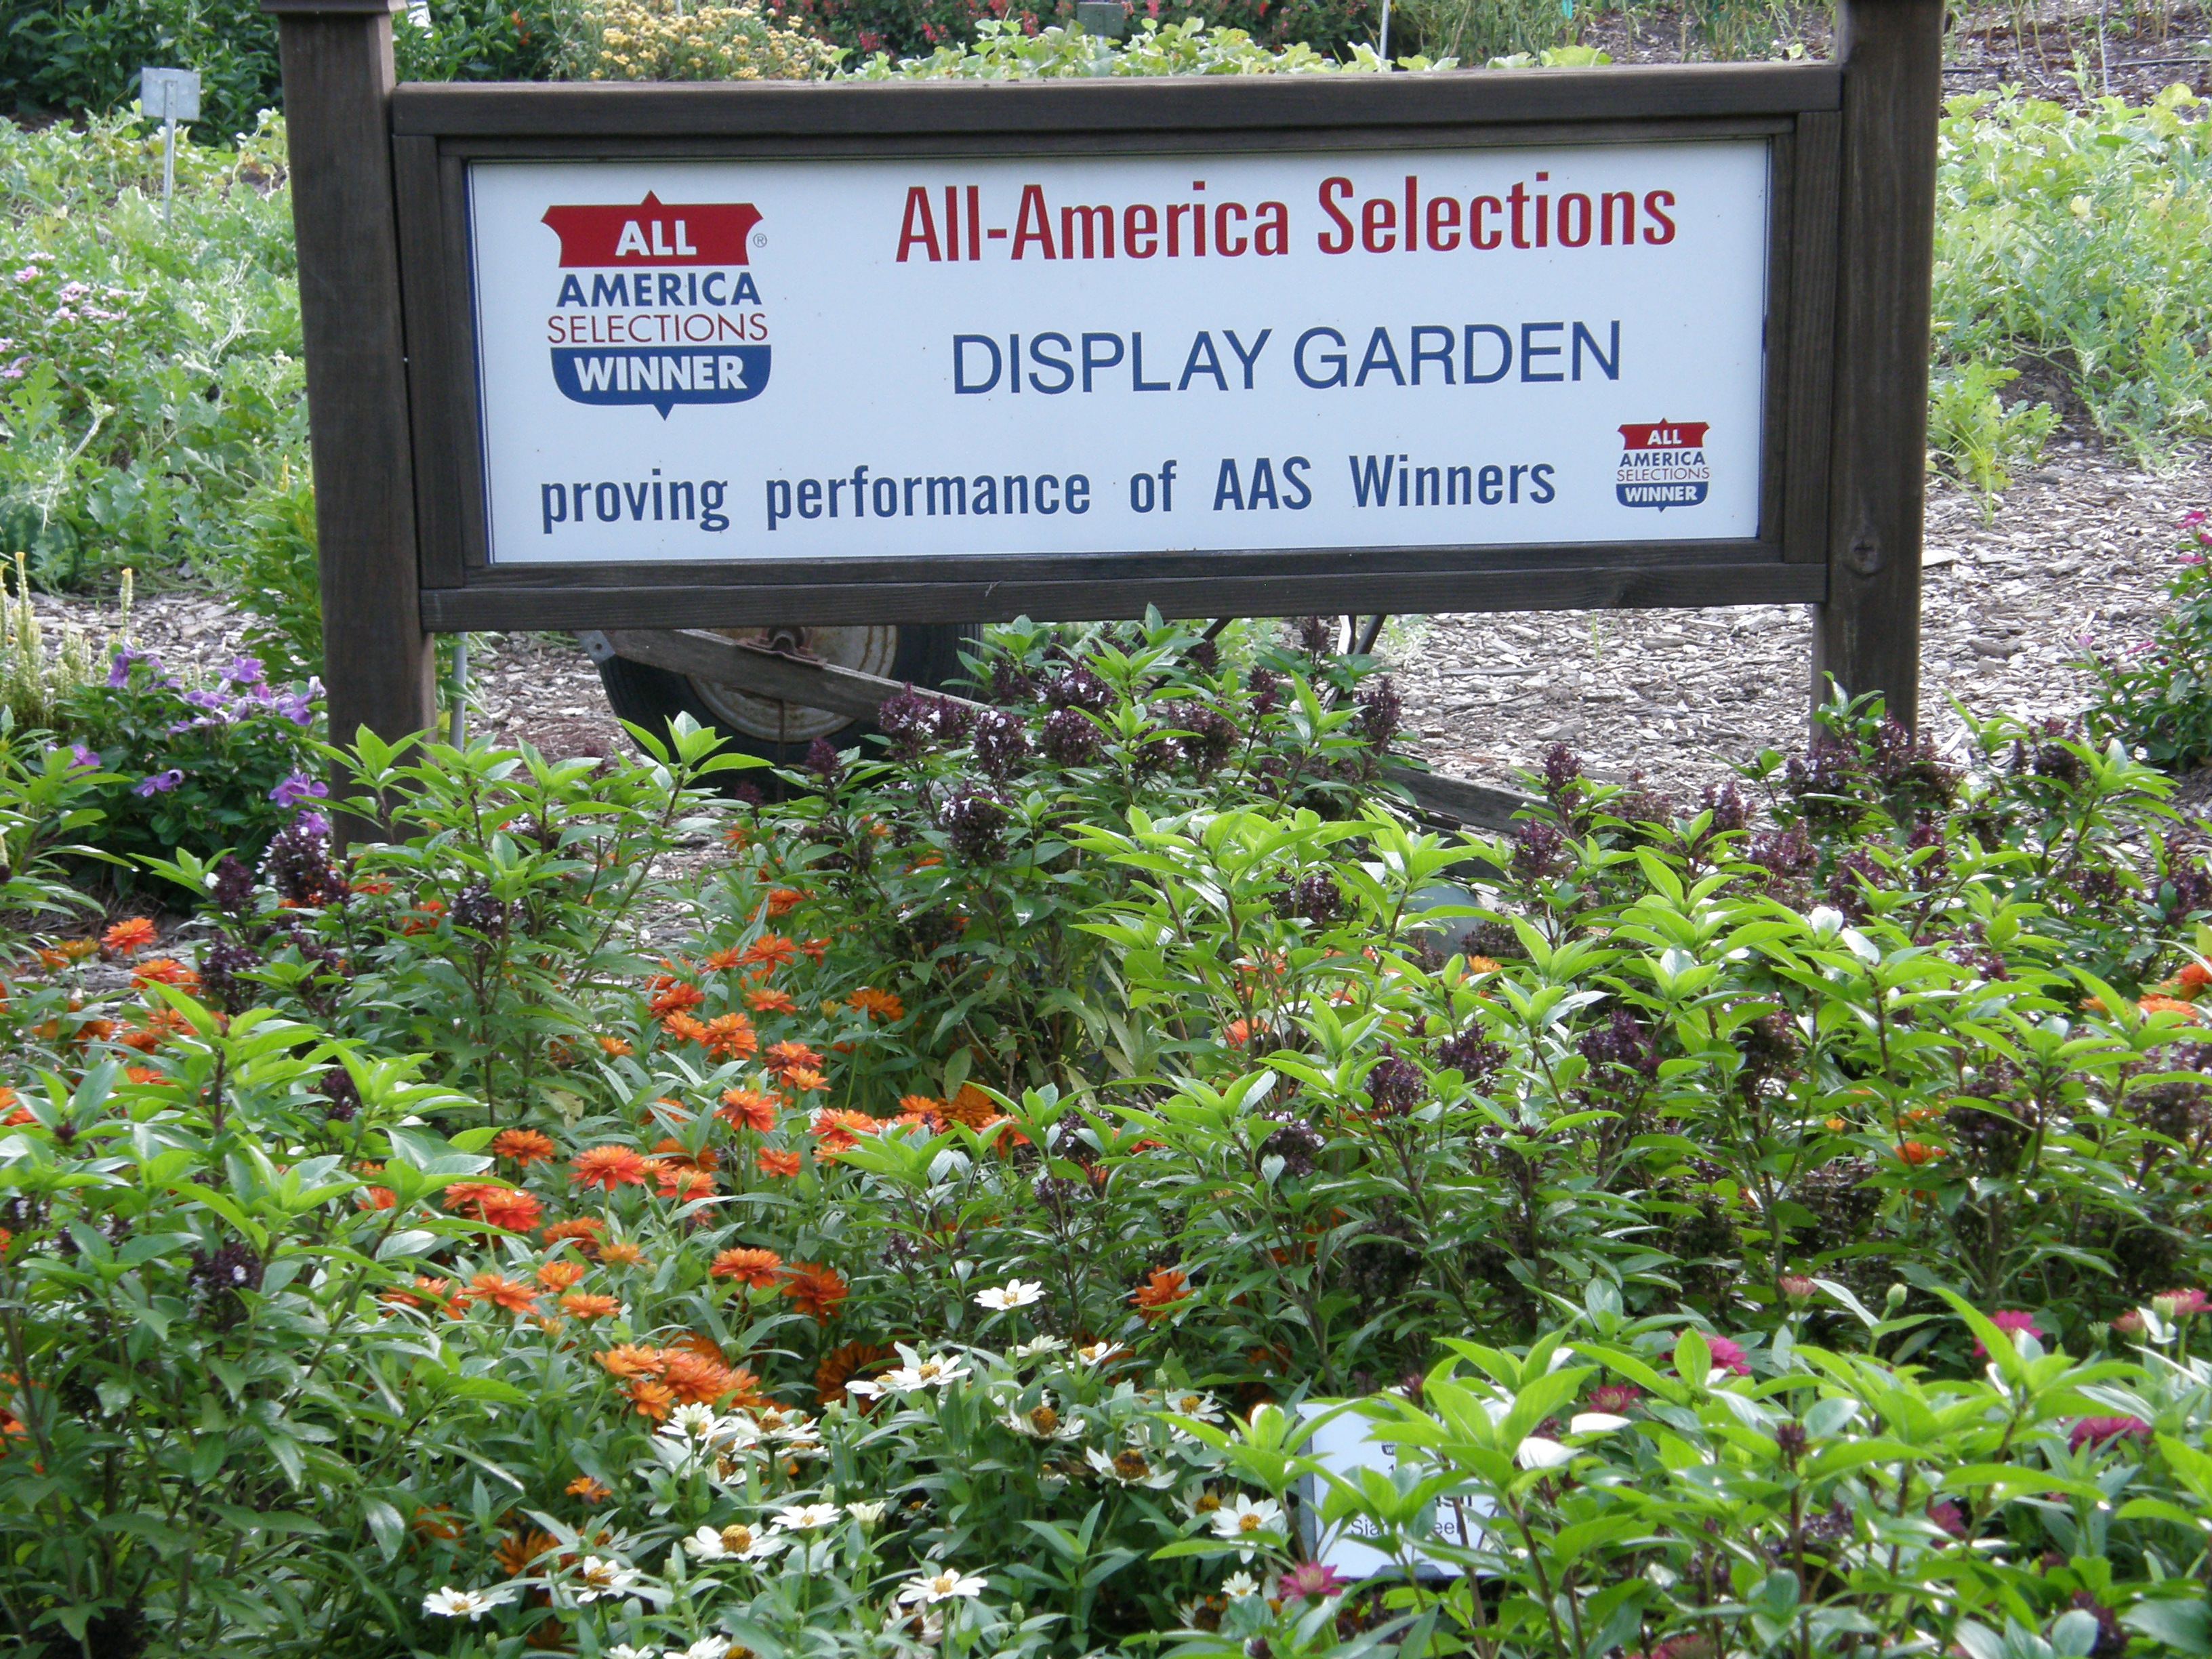 AAS Display Garden Sign